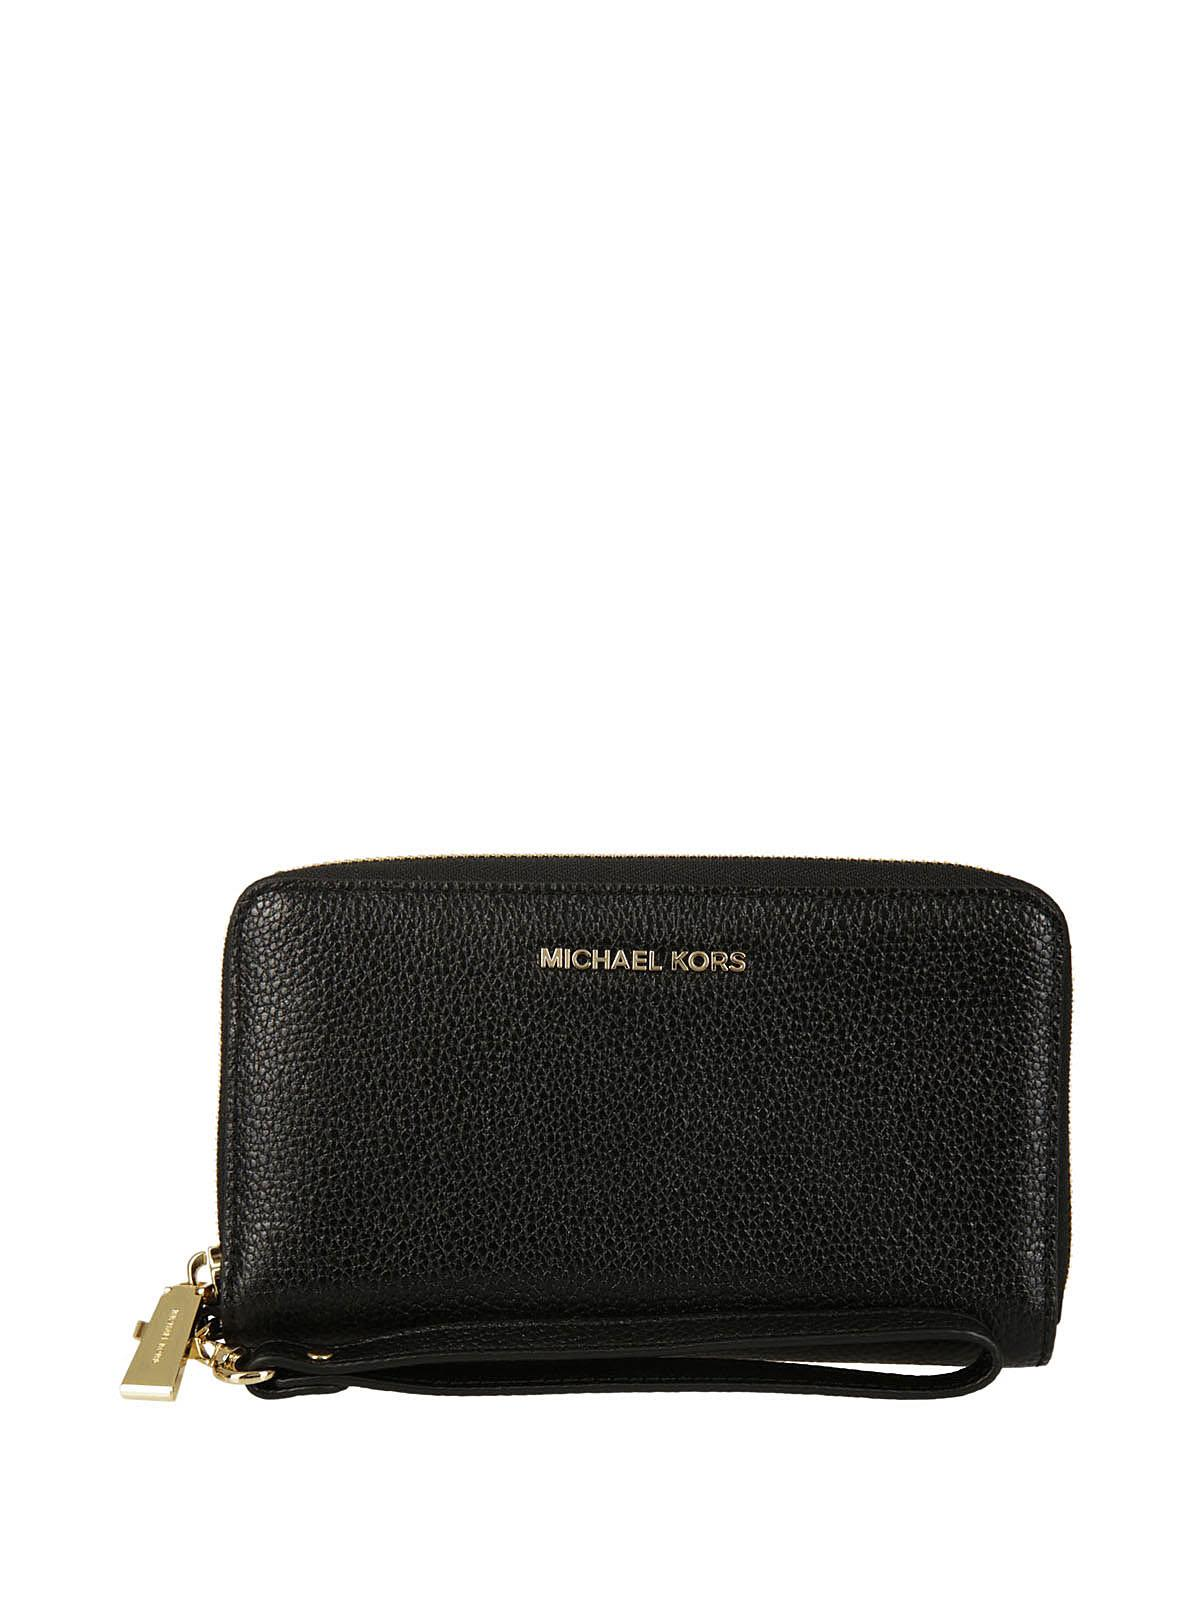 Michael Kors Mercer Smartphone Zip Around Wallet